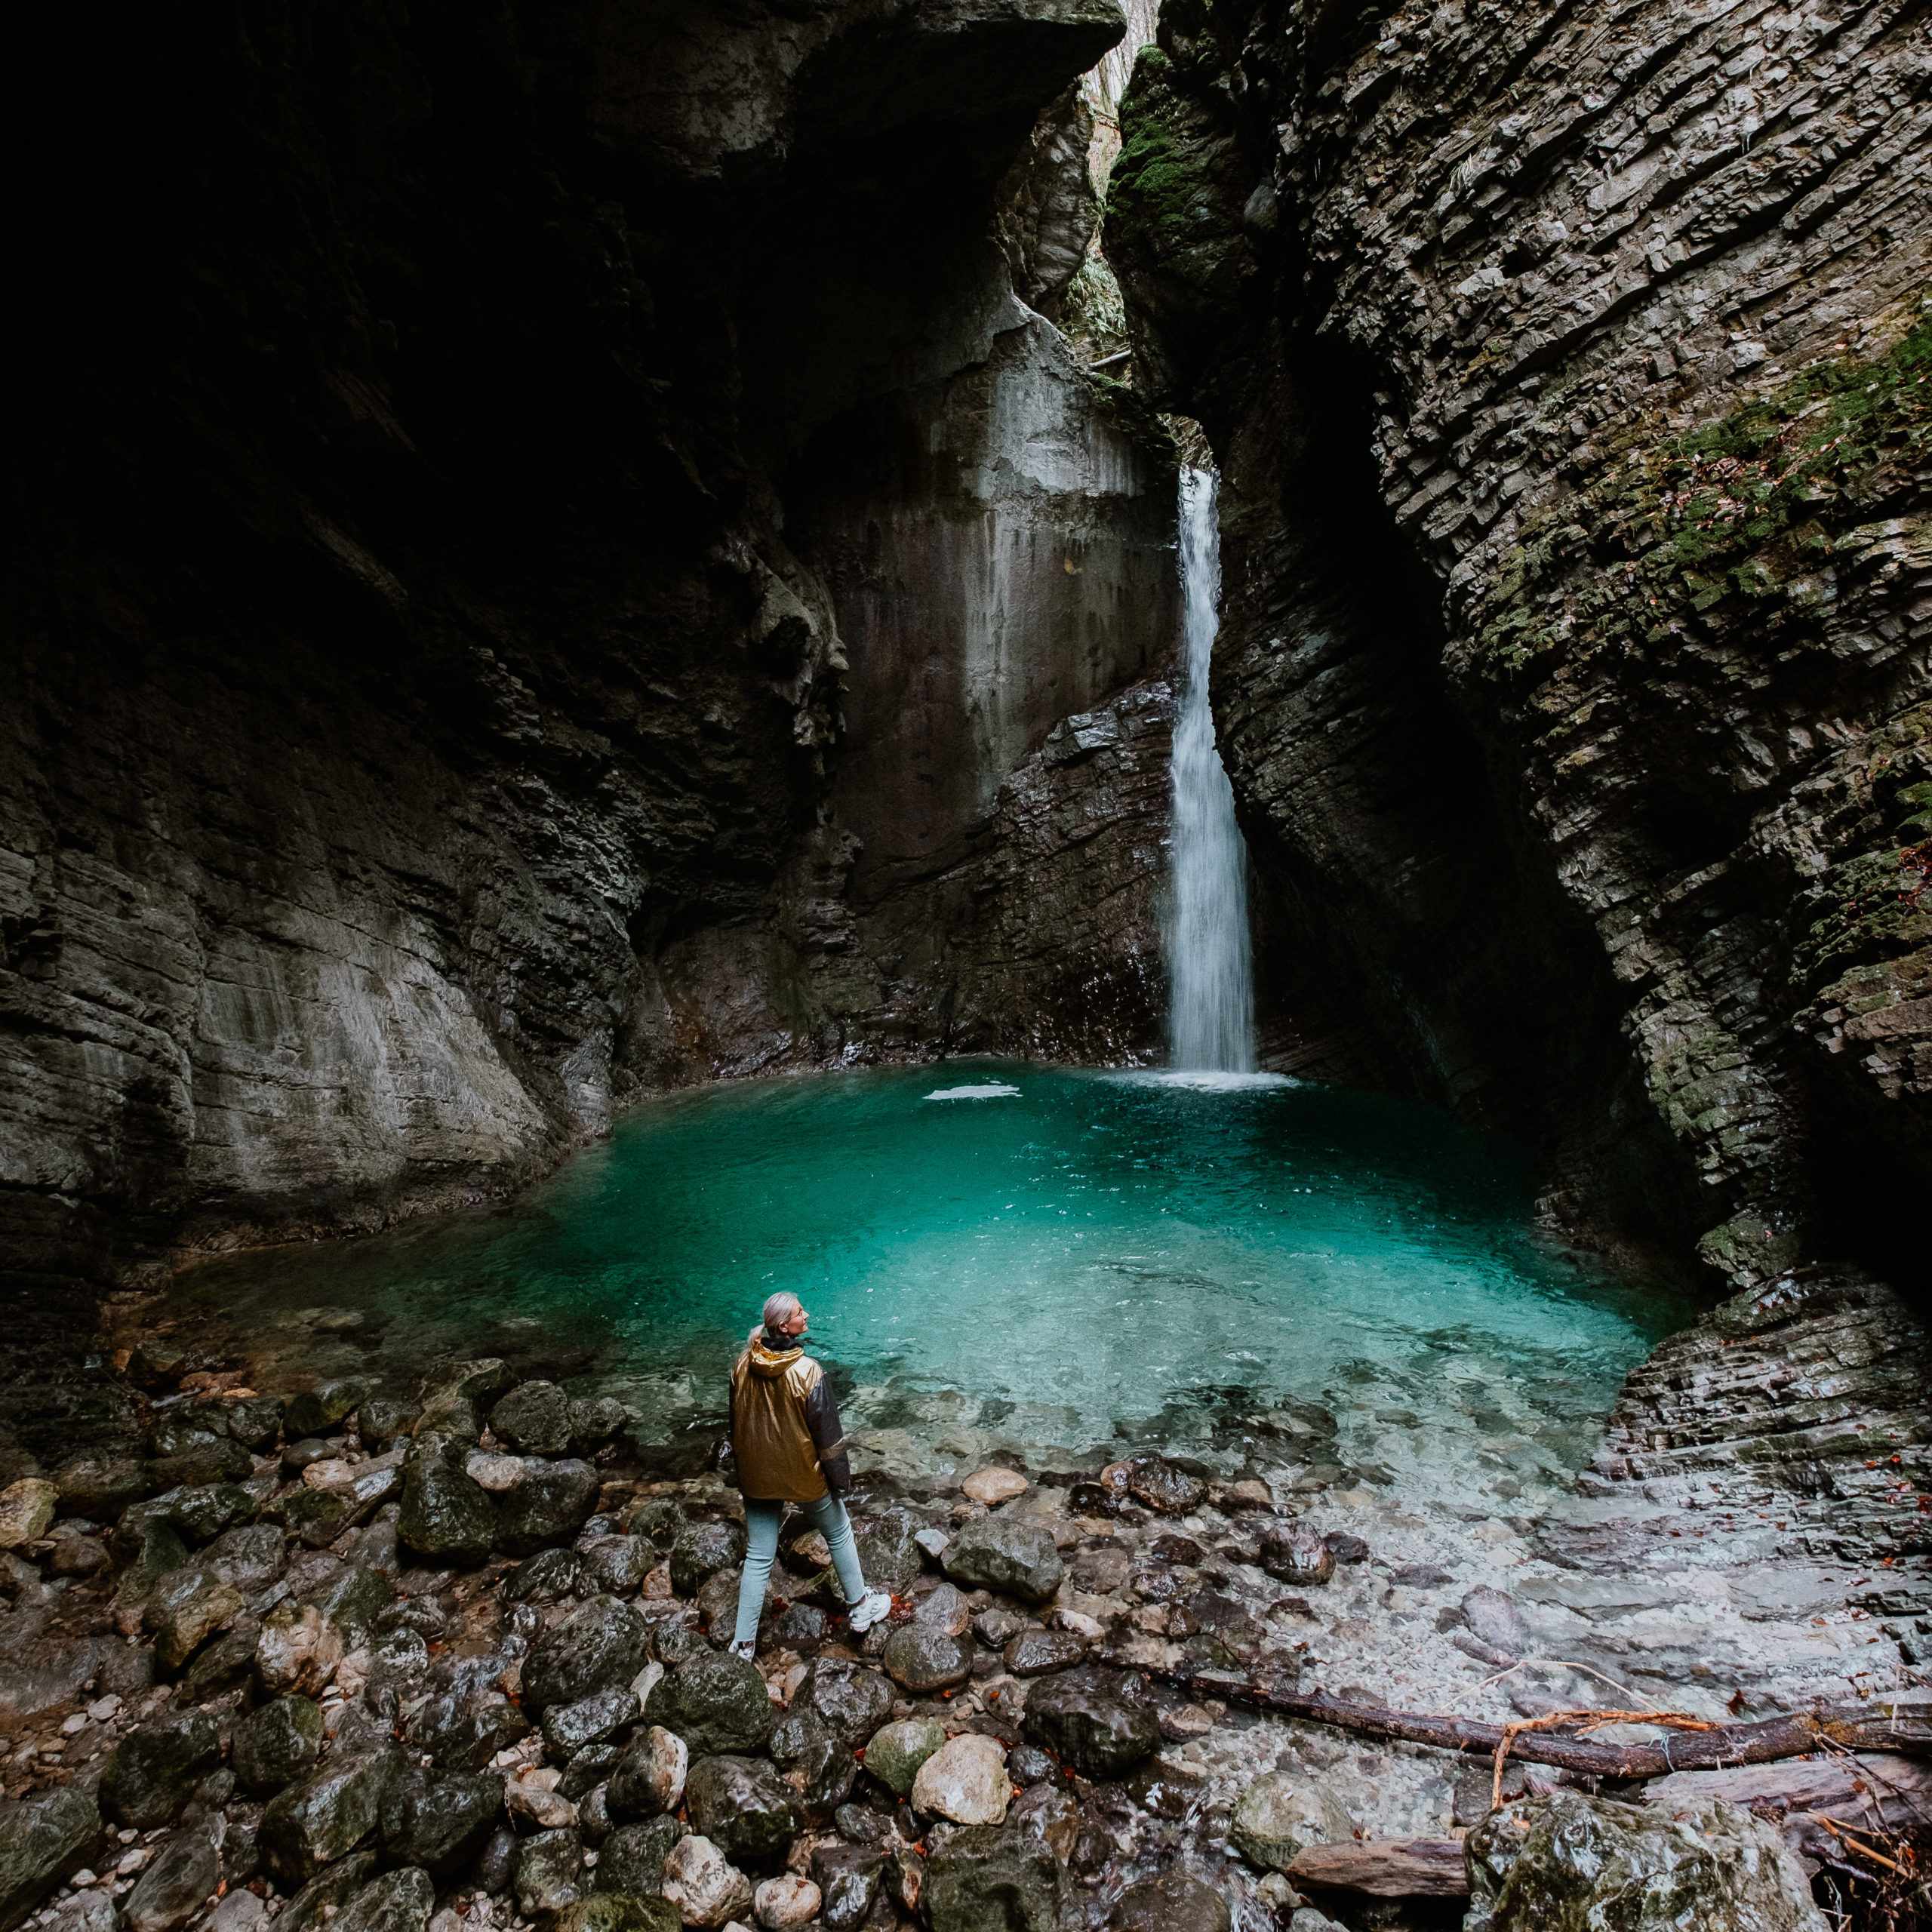 endroits-instagrammables-waterfall-kozjak